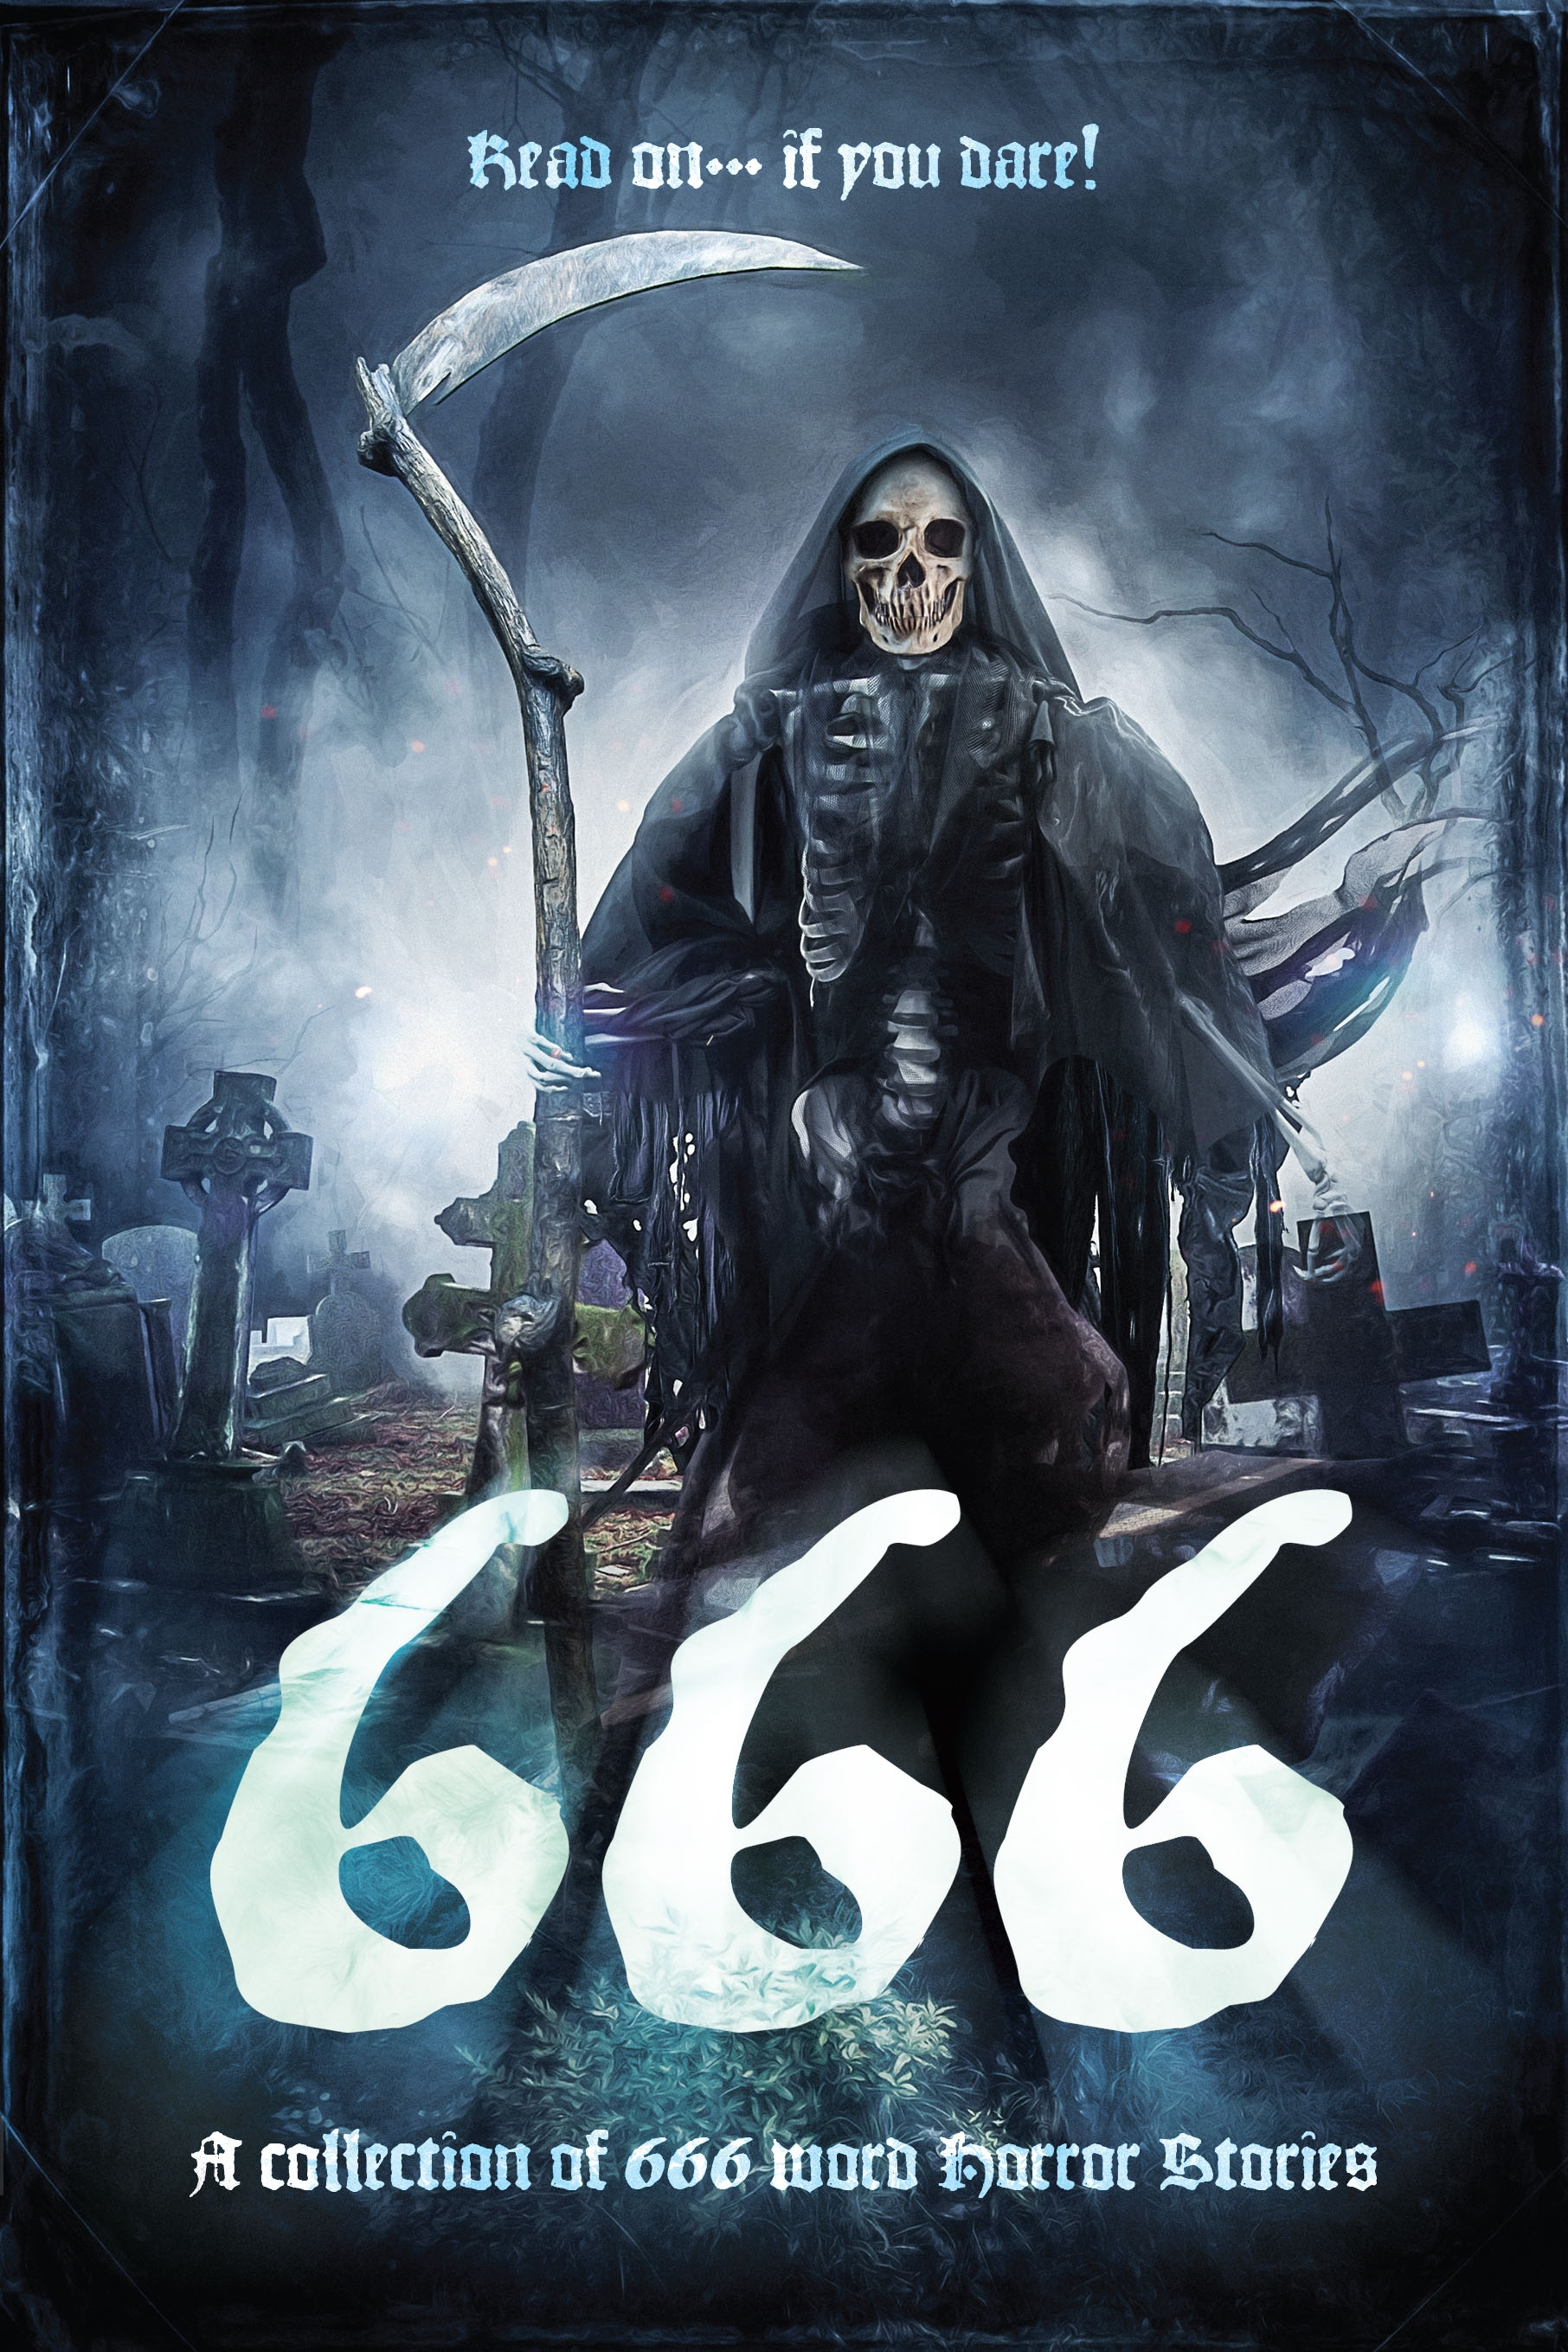 The cover of the '666' anthology.